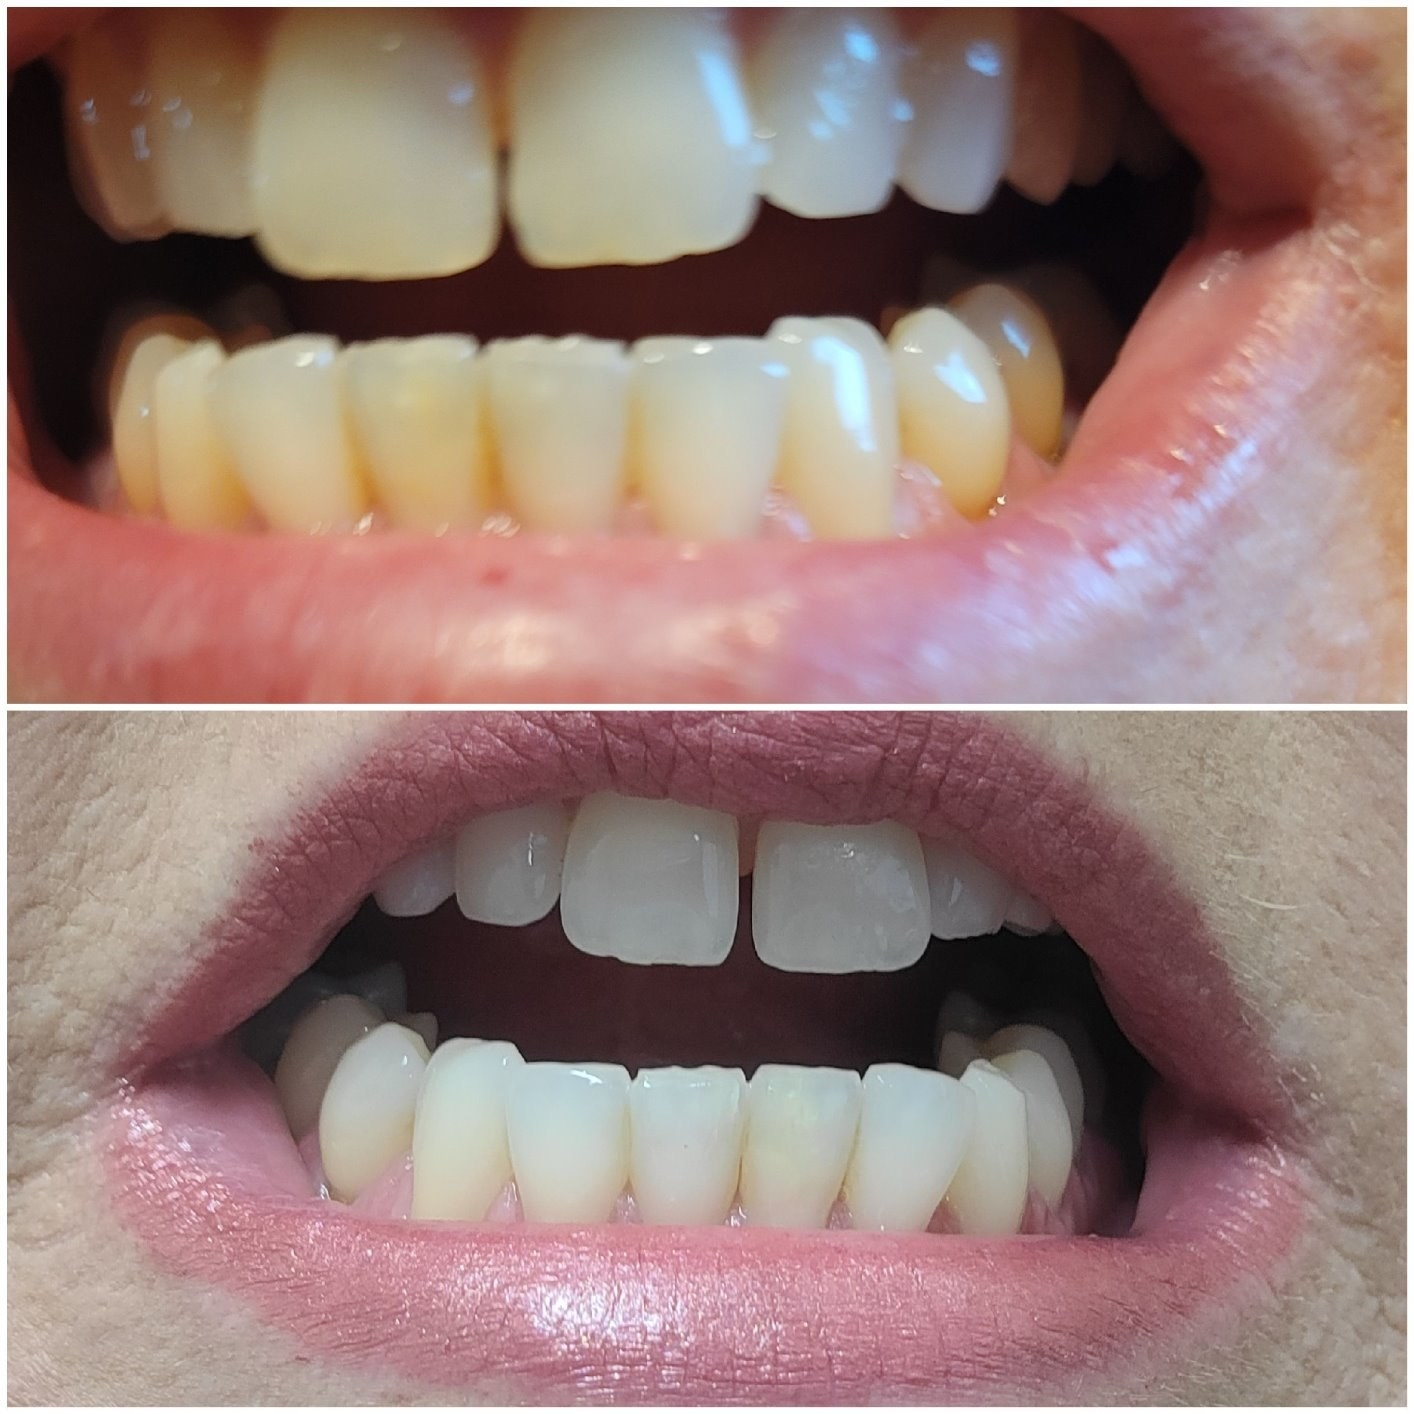 Reviewer before and after showing the pen noticeably whitened their yellow teeth